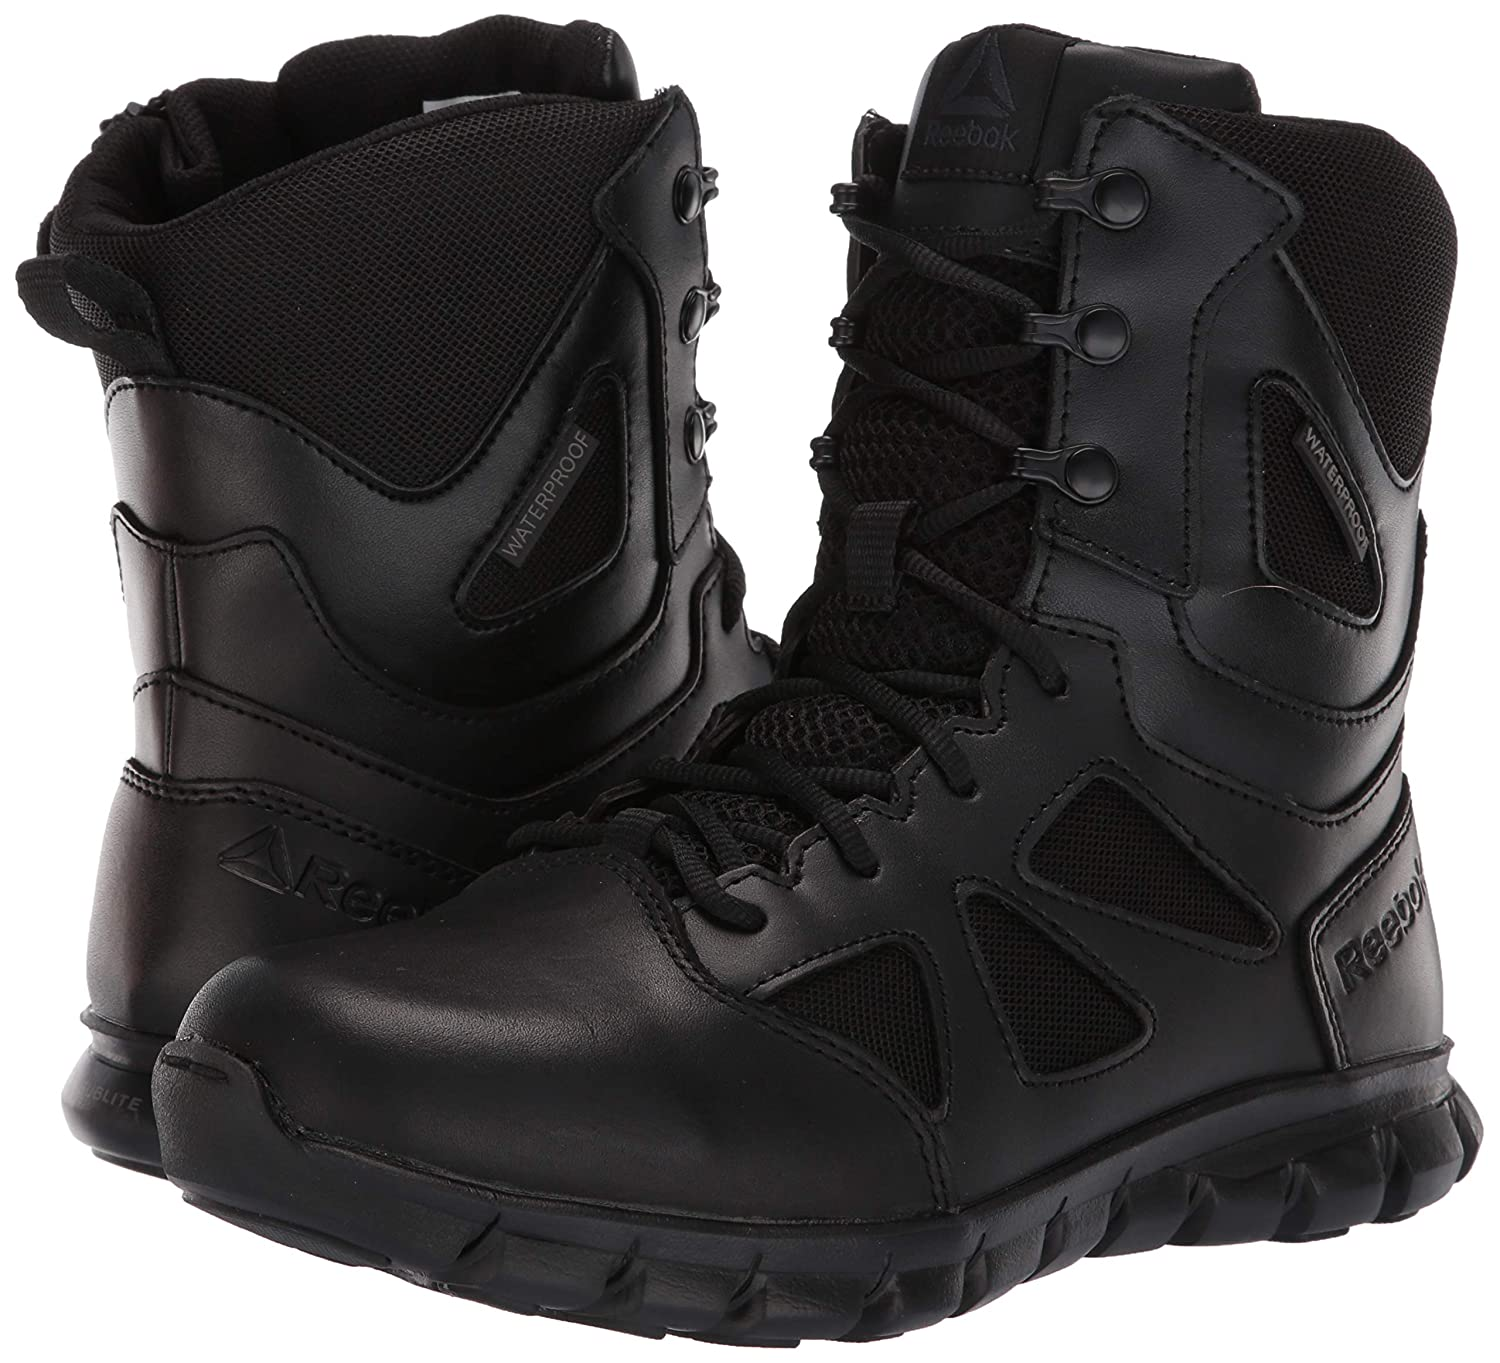 Reebok Womens Sublite Cushion Tactical RB806 Military /& Tactical Boot